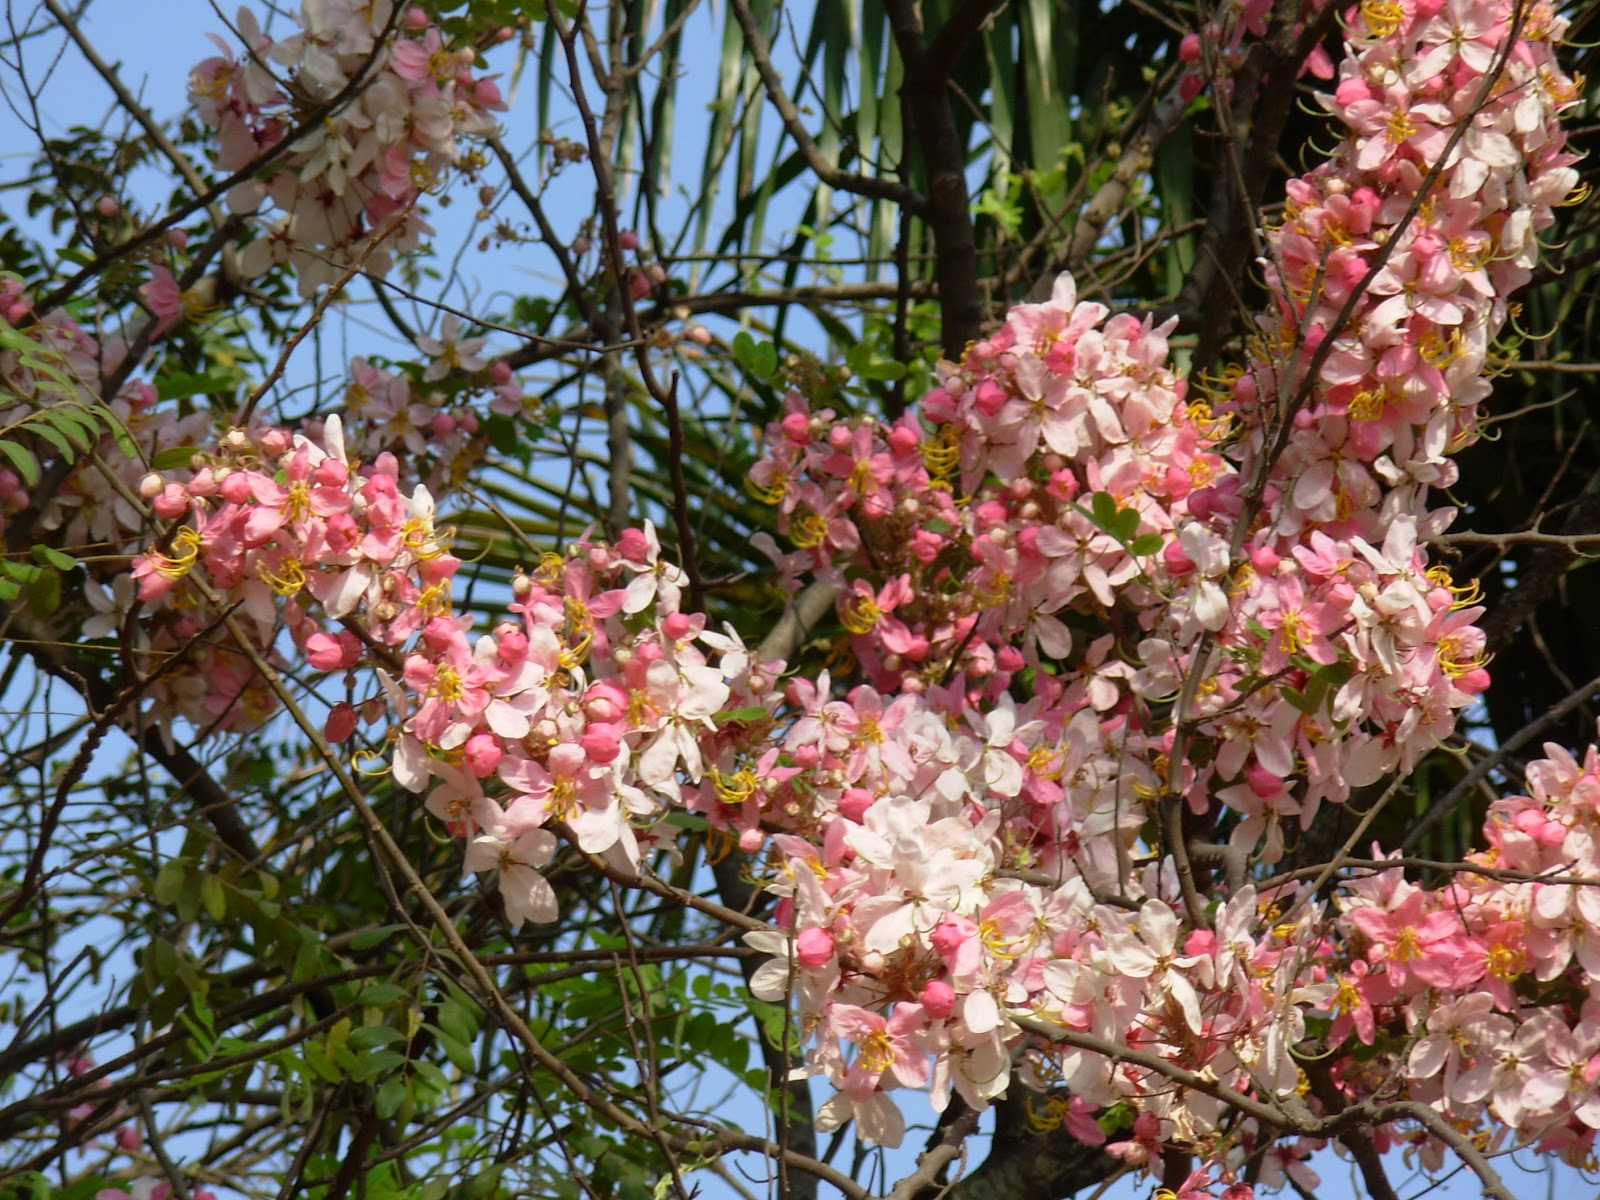 Summer blooms along bangalore roads rambling form a beautiful painting against the back drop of the blue skies and the feathery light green leaves it has its origins in brazil the flowering tree mightylinksfo